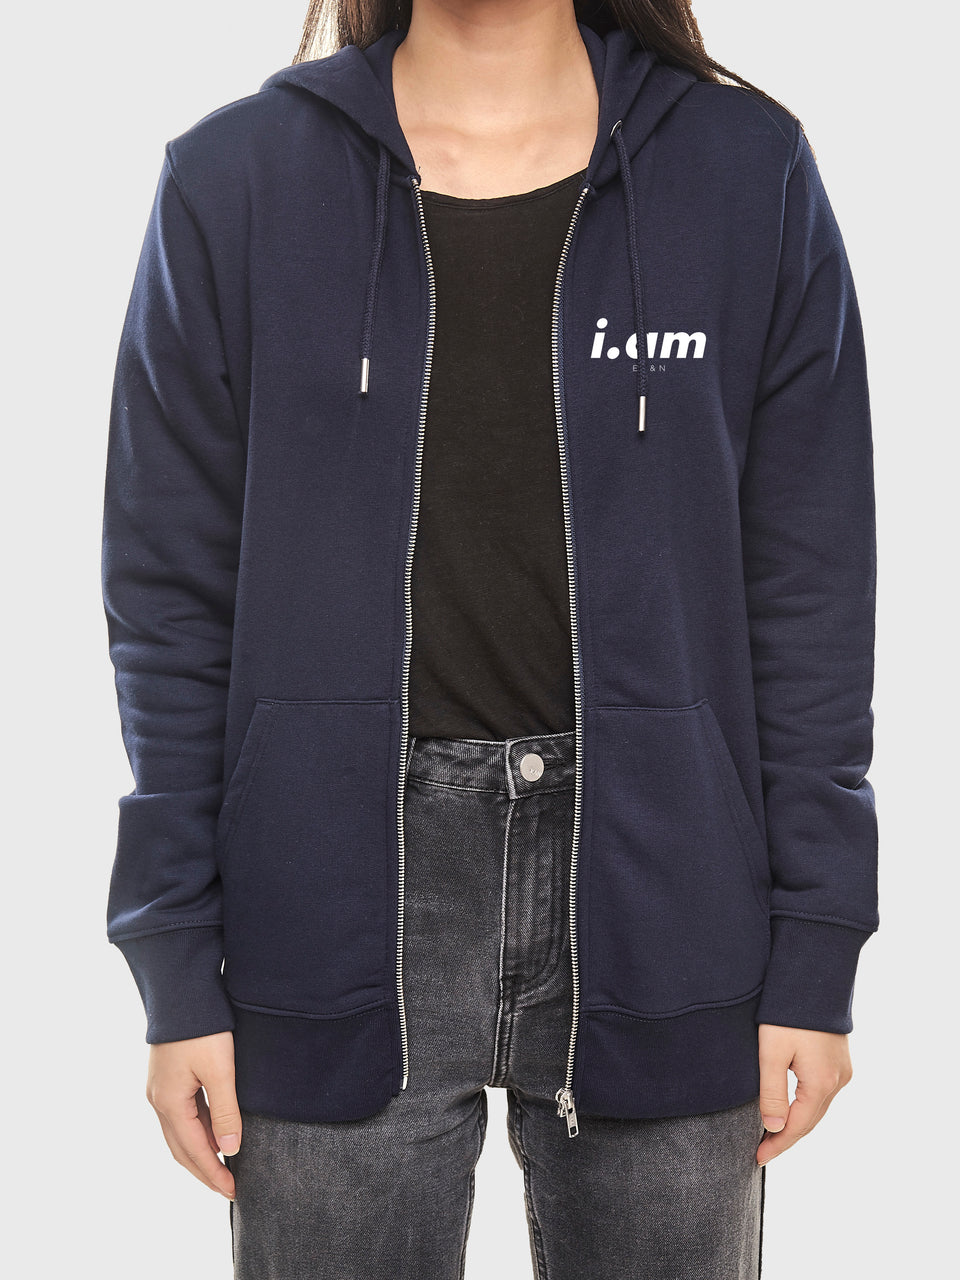 Made in London - Navy - Unisex zip up hoodie